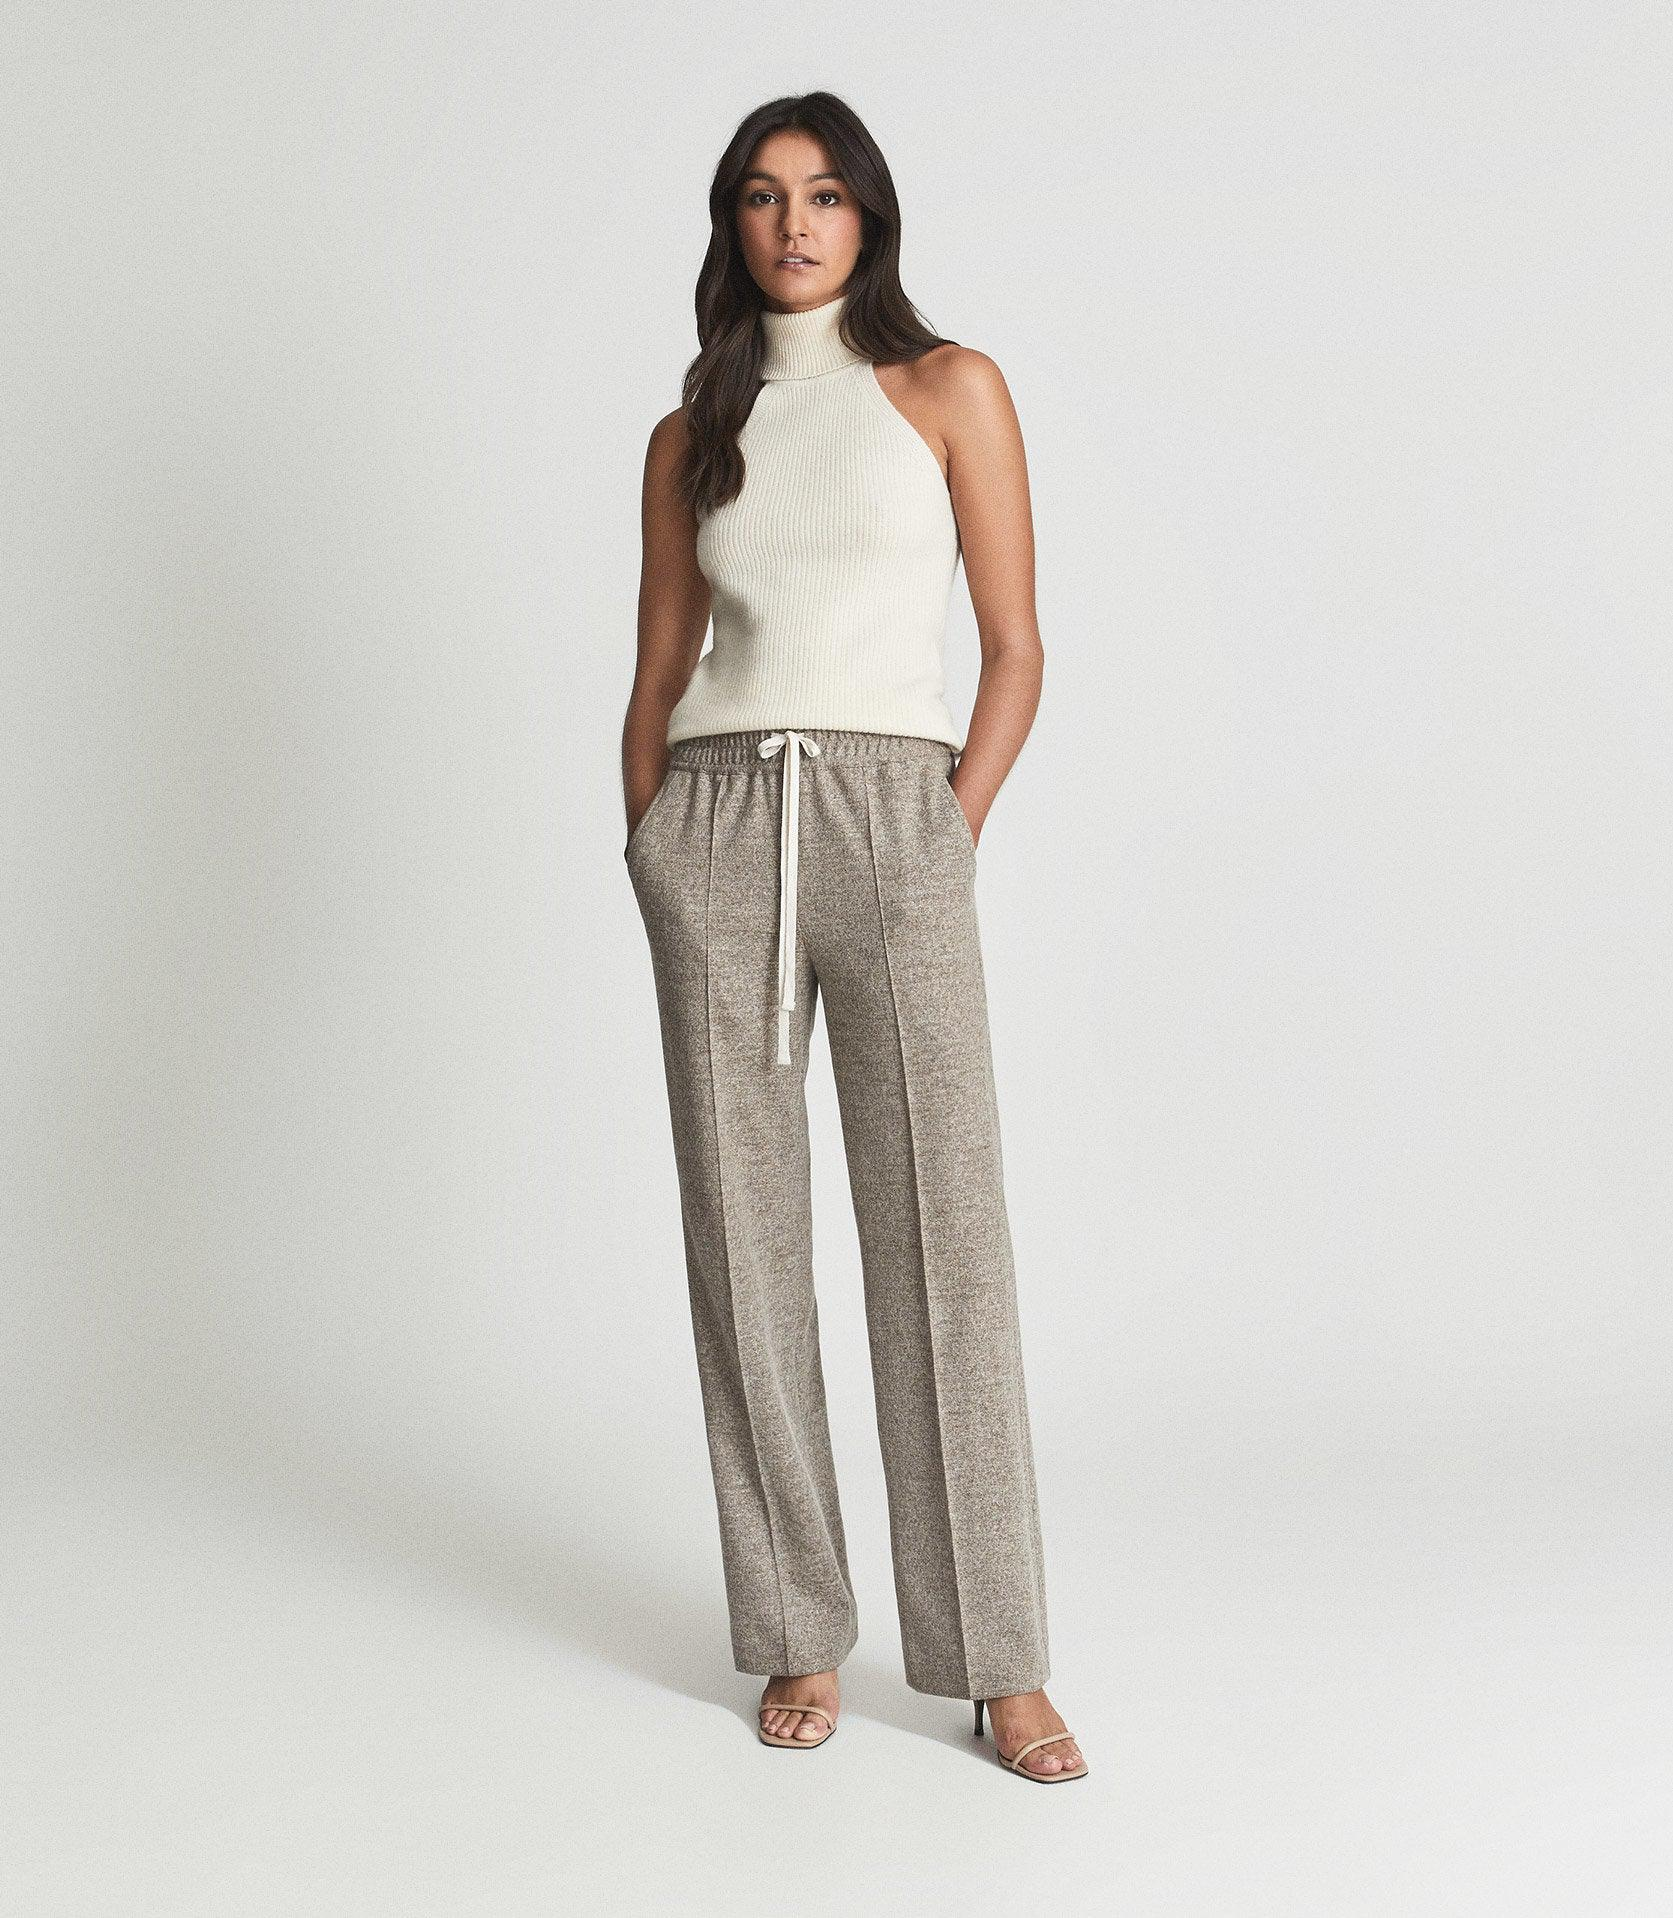 JOEY - TEXTURED WIDE LEG TROUSERS 1